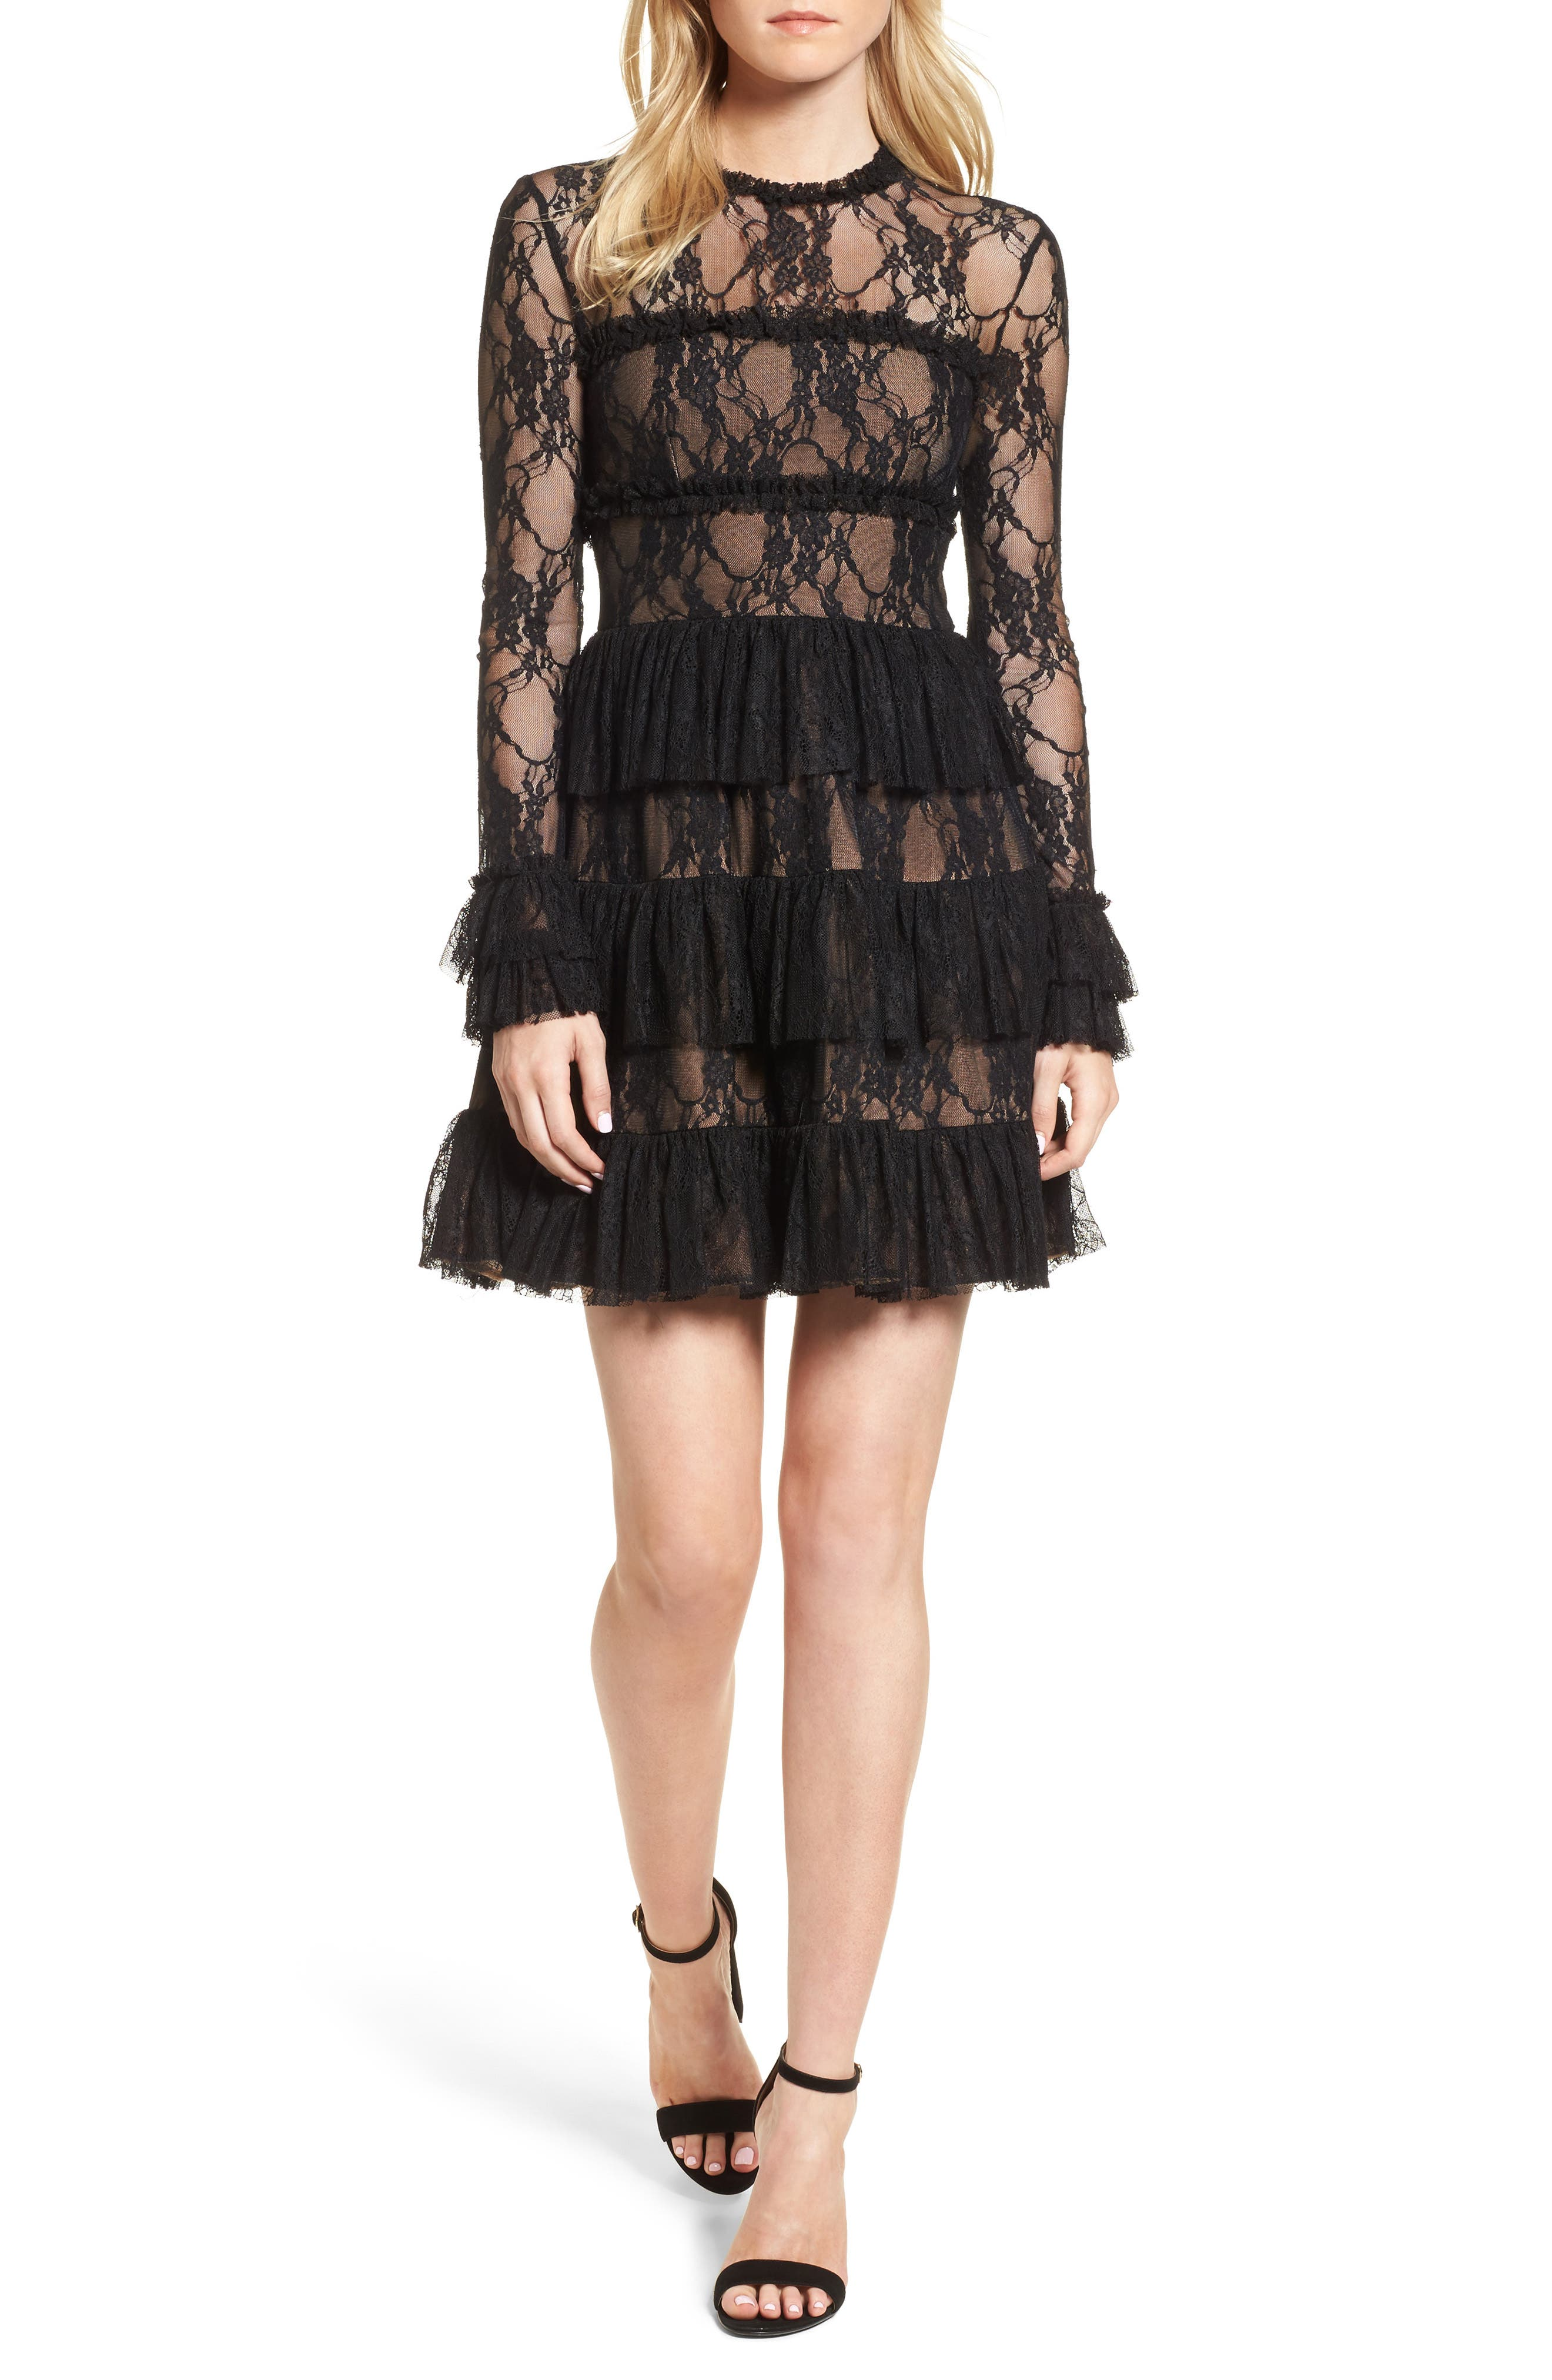 Alternate Image 1 Selected - Bailey 44 Feeding Circle A-Line Lace Dress